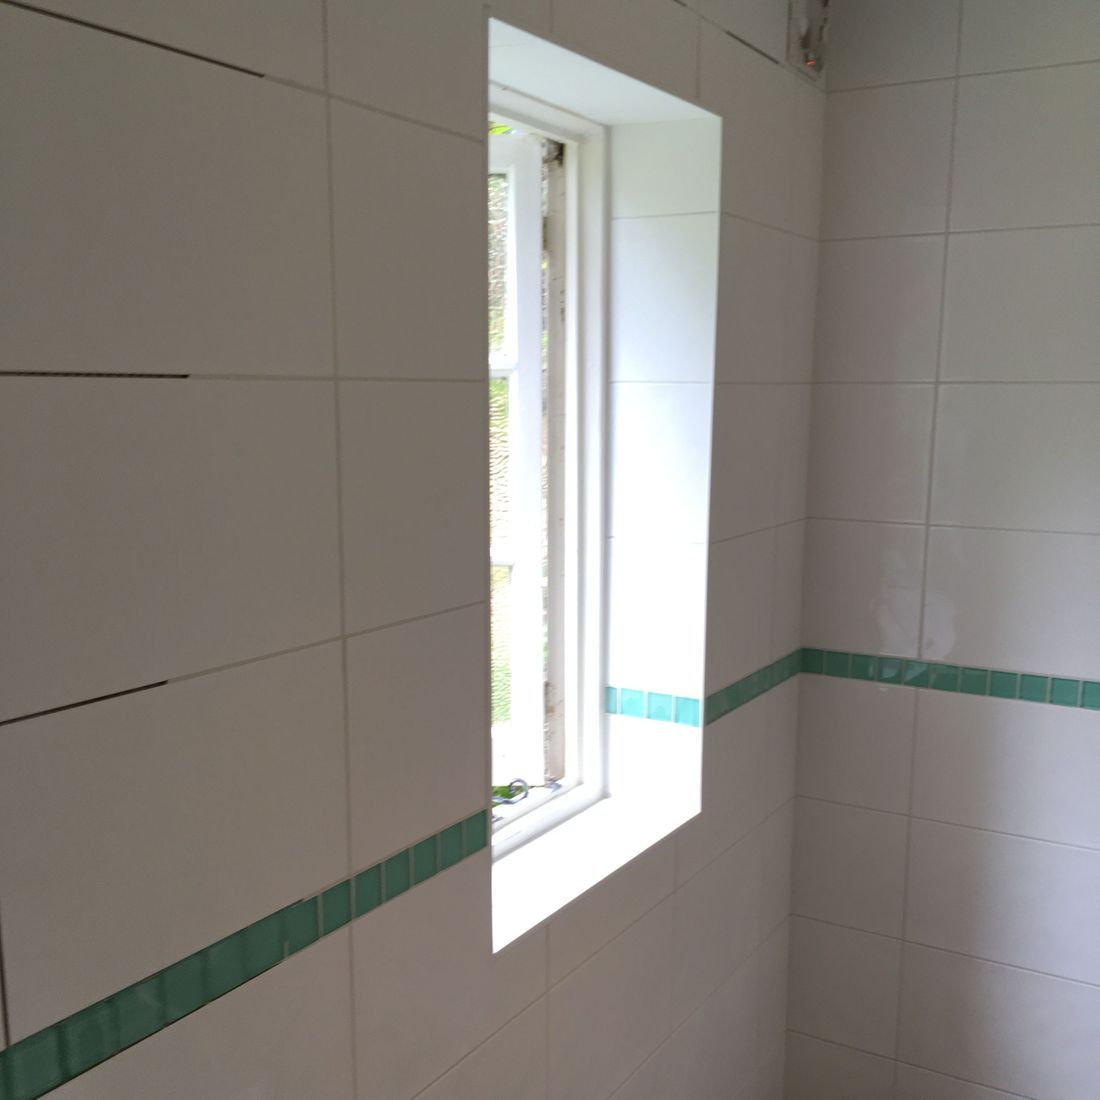 greeb glass tiles bathroom